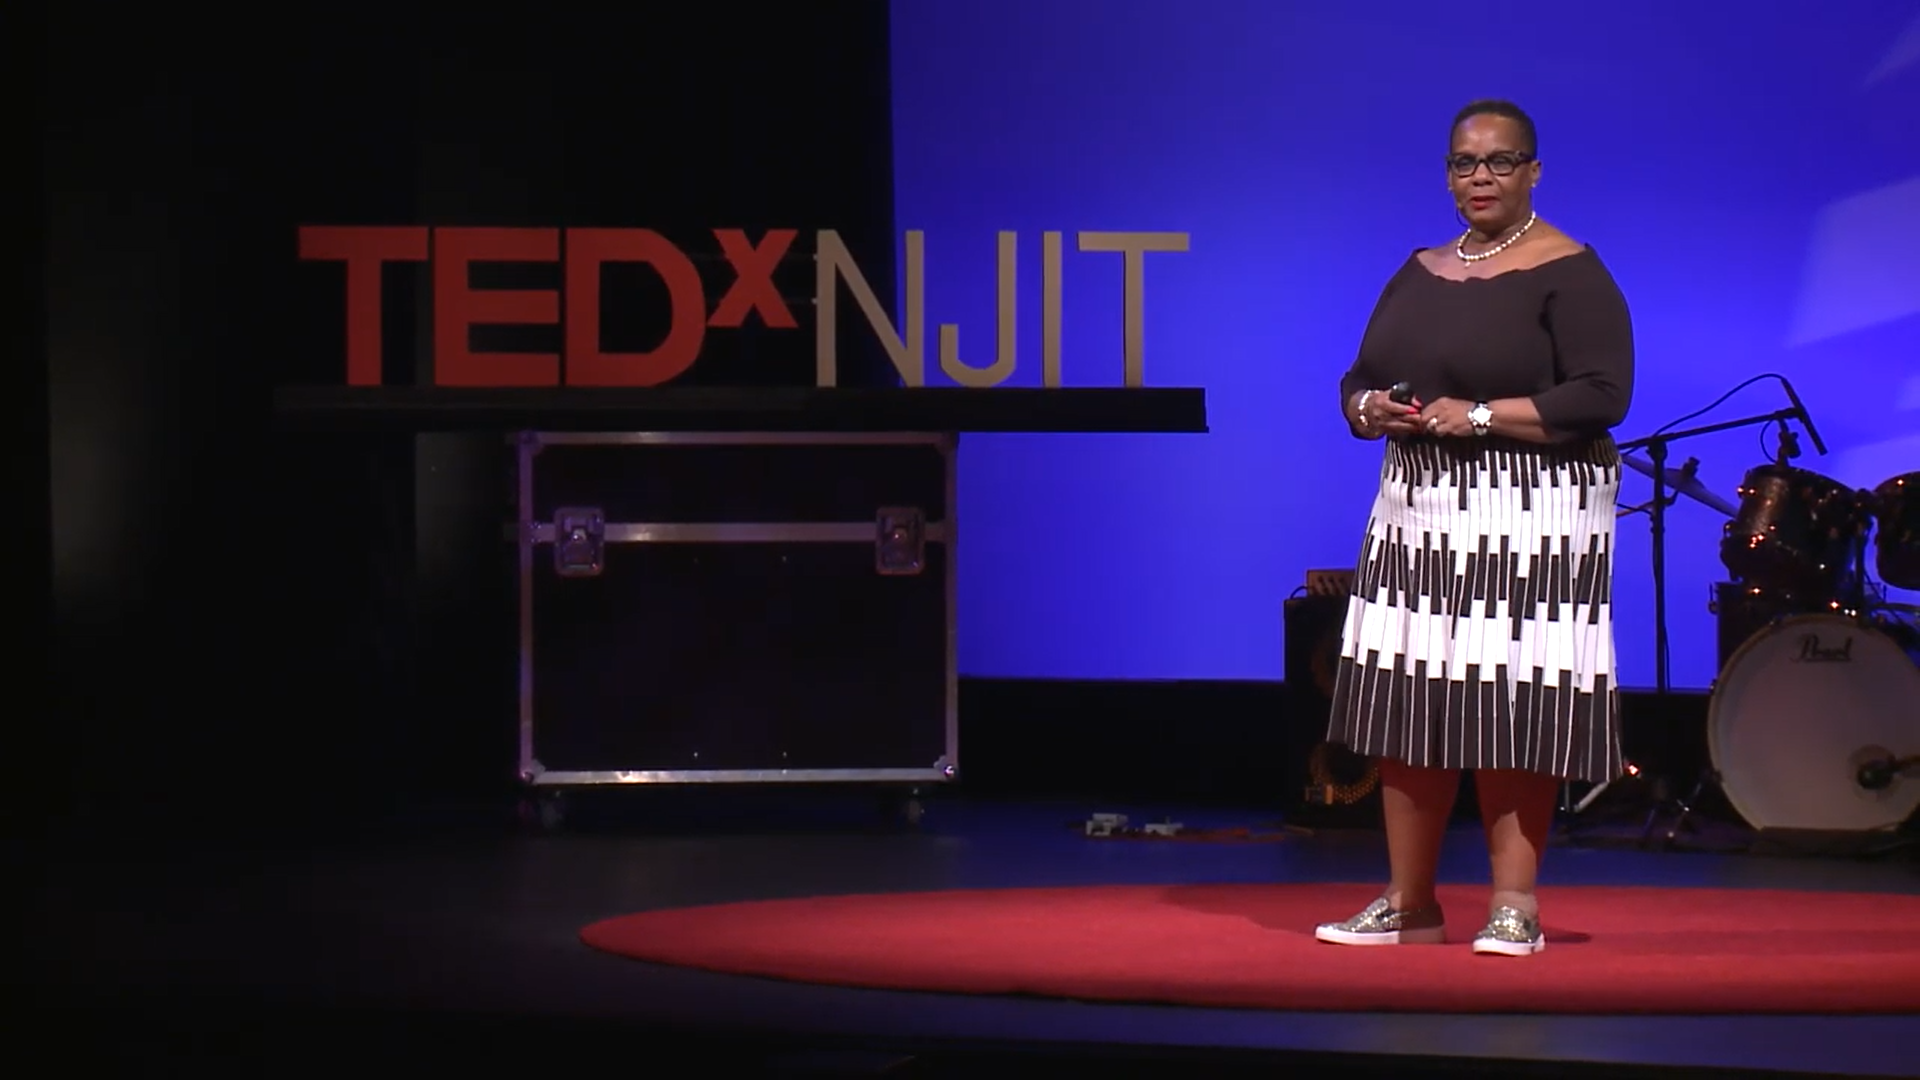 Marjorie Perry TEDx Speaker at NJIT